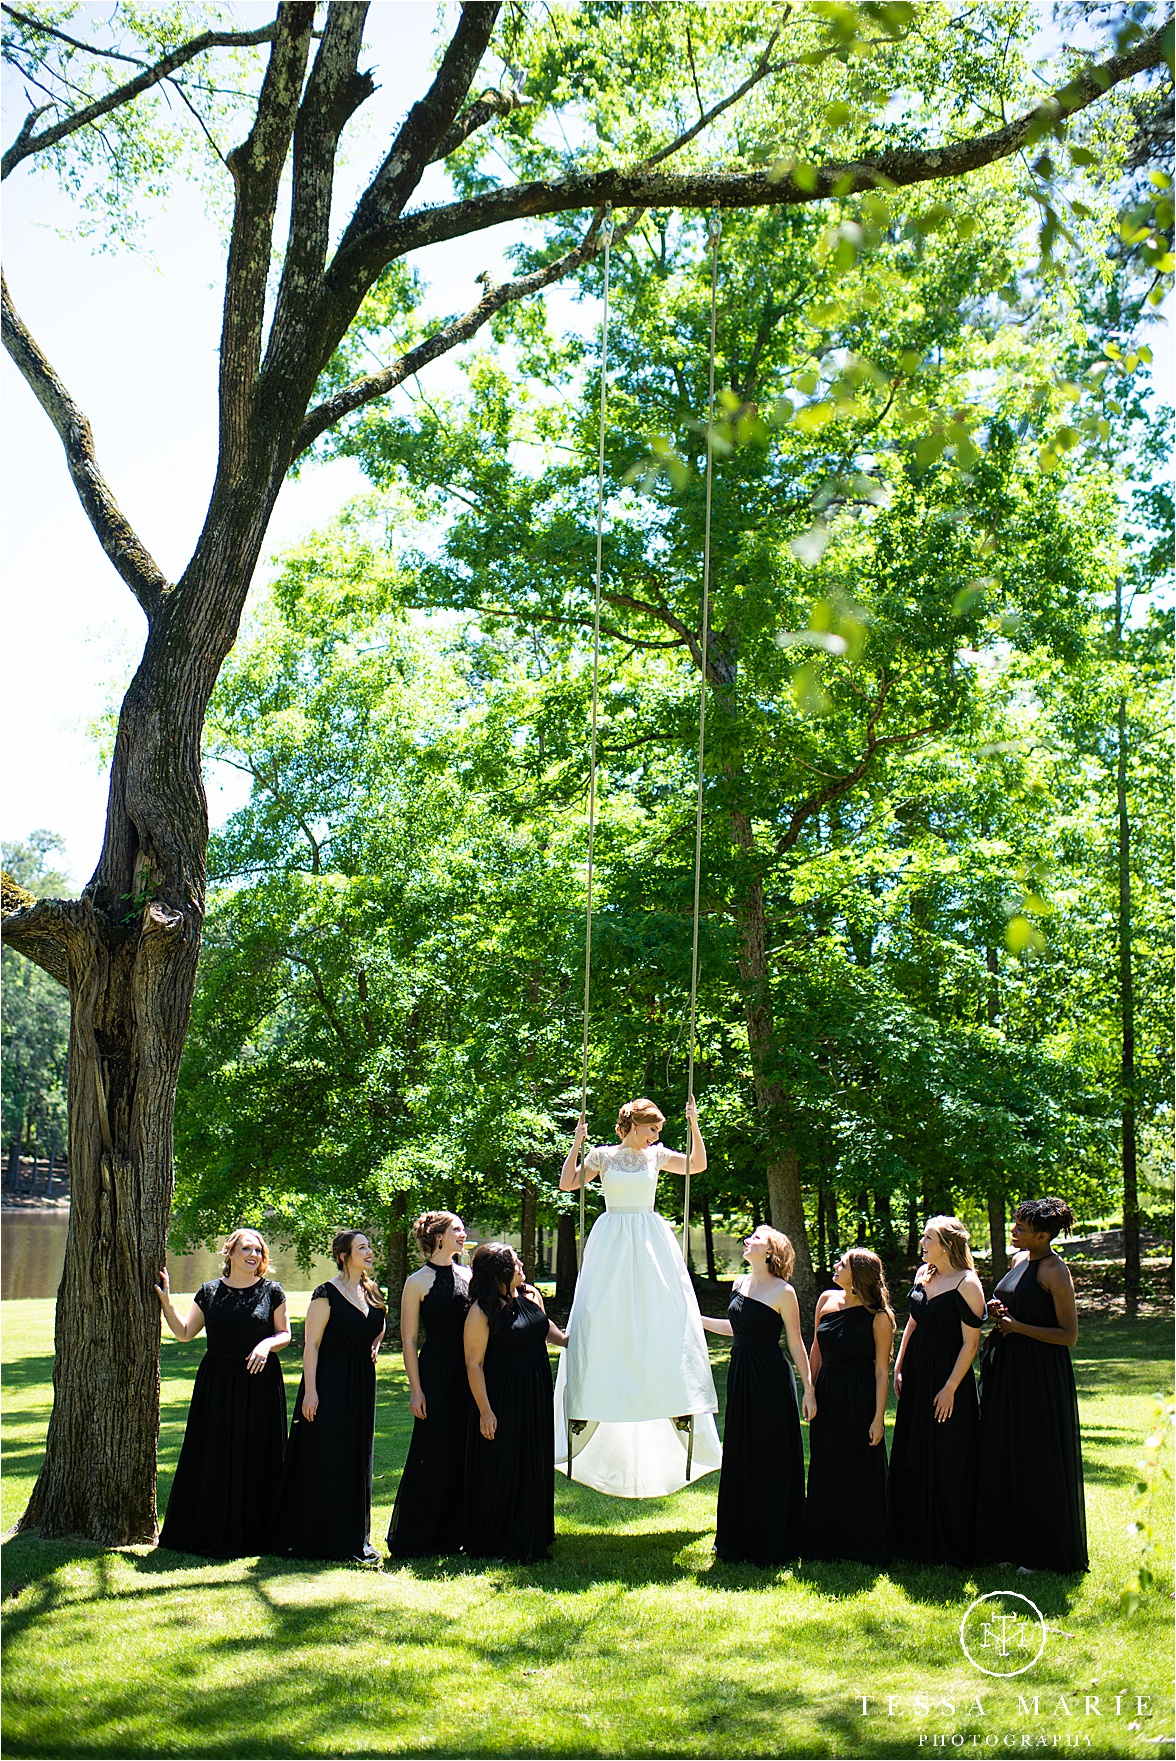 Tessa_marie_weddings_columbus_wedding_photographer_wedding_day_spring_outdoor_wedding_0022.jpg